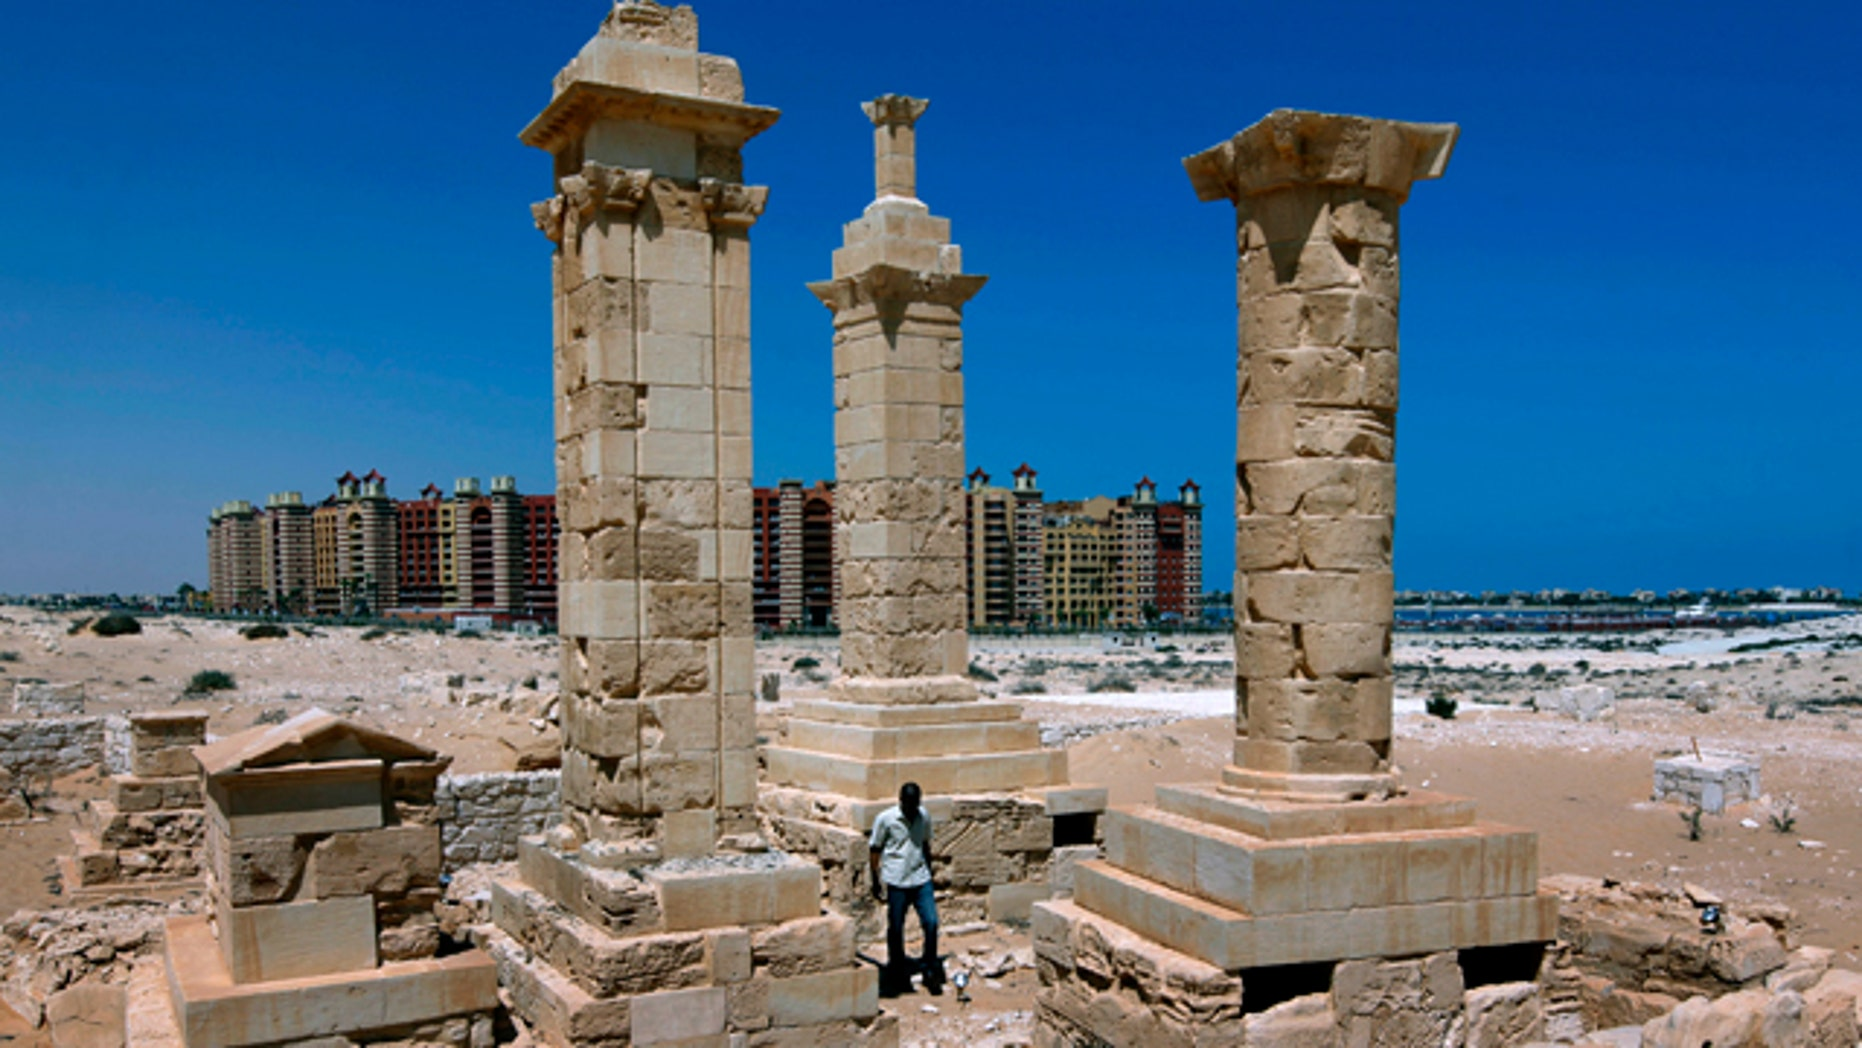 With a five star hotel in the background, a man walks by restored Roman pillar tombs of the ancient city of Leukaspis a well known Greco-Roman port overlooking the Mediterranean Sea at the costal resorts of Marina,  Egypt Sunday, Aug. 29, 2010. Today, it's a sprawl of luxury vacation homes where Egypt's wealthy play on the white beaches of the Mediterranean coast. But 2,000 years ago, this was a thriving Greco-Roman port city, boasting villas of merchants grown rich on the wheat and olive trade.